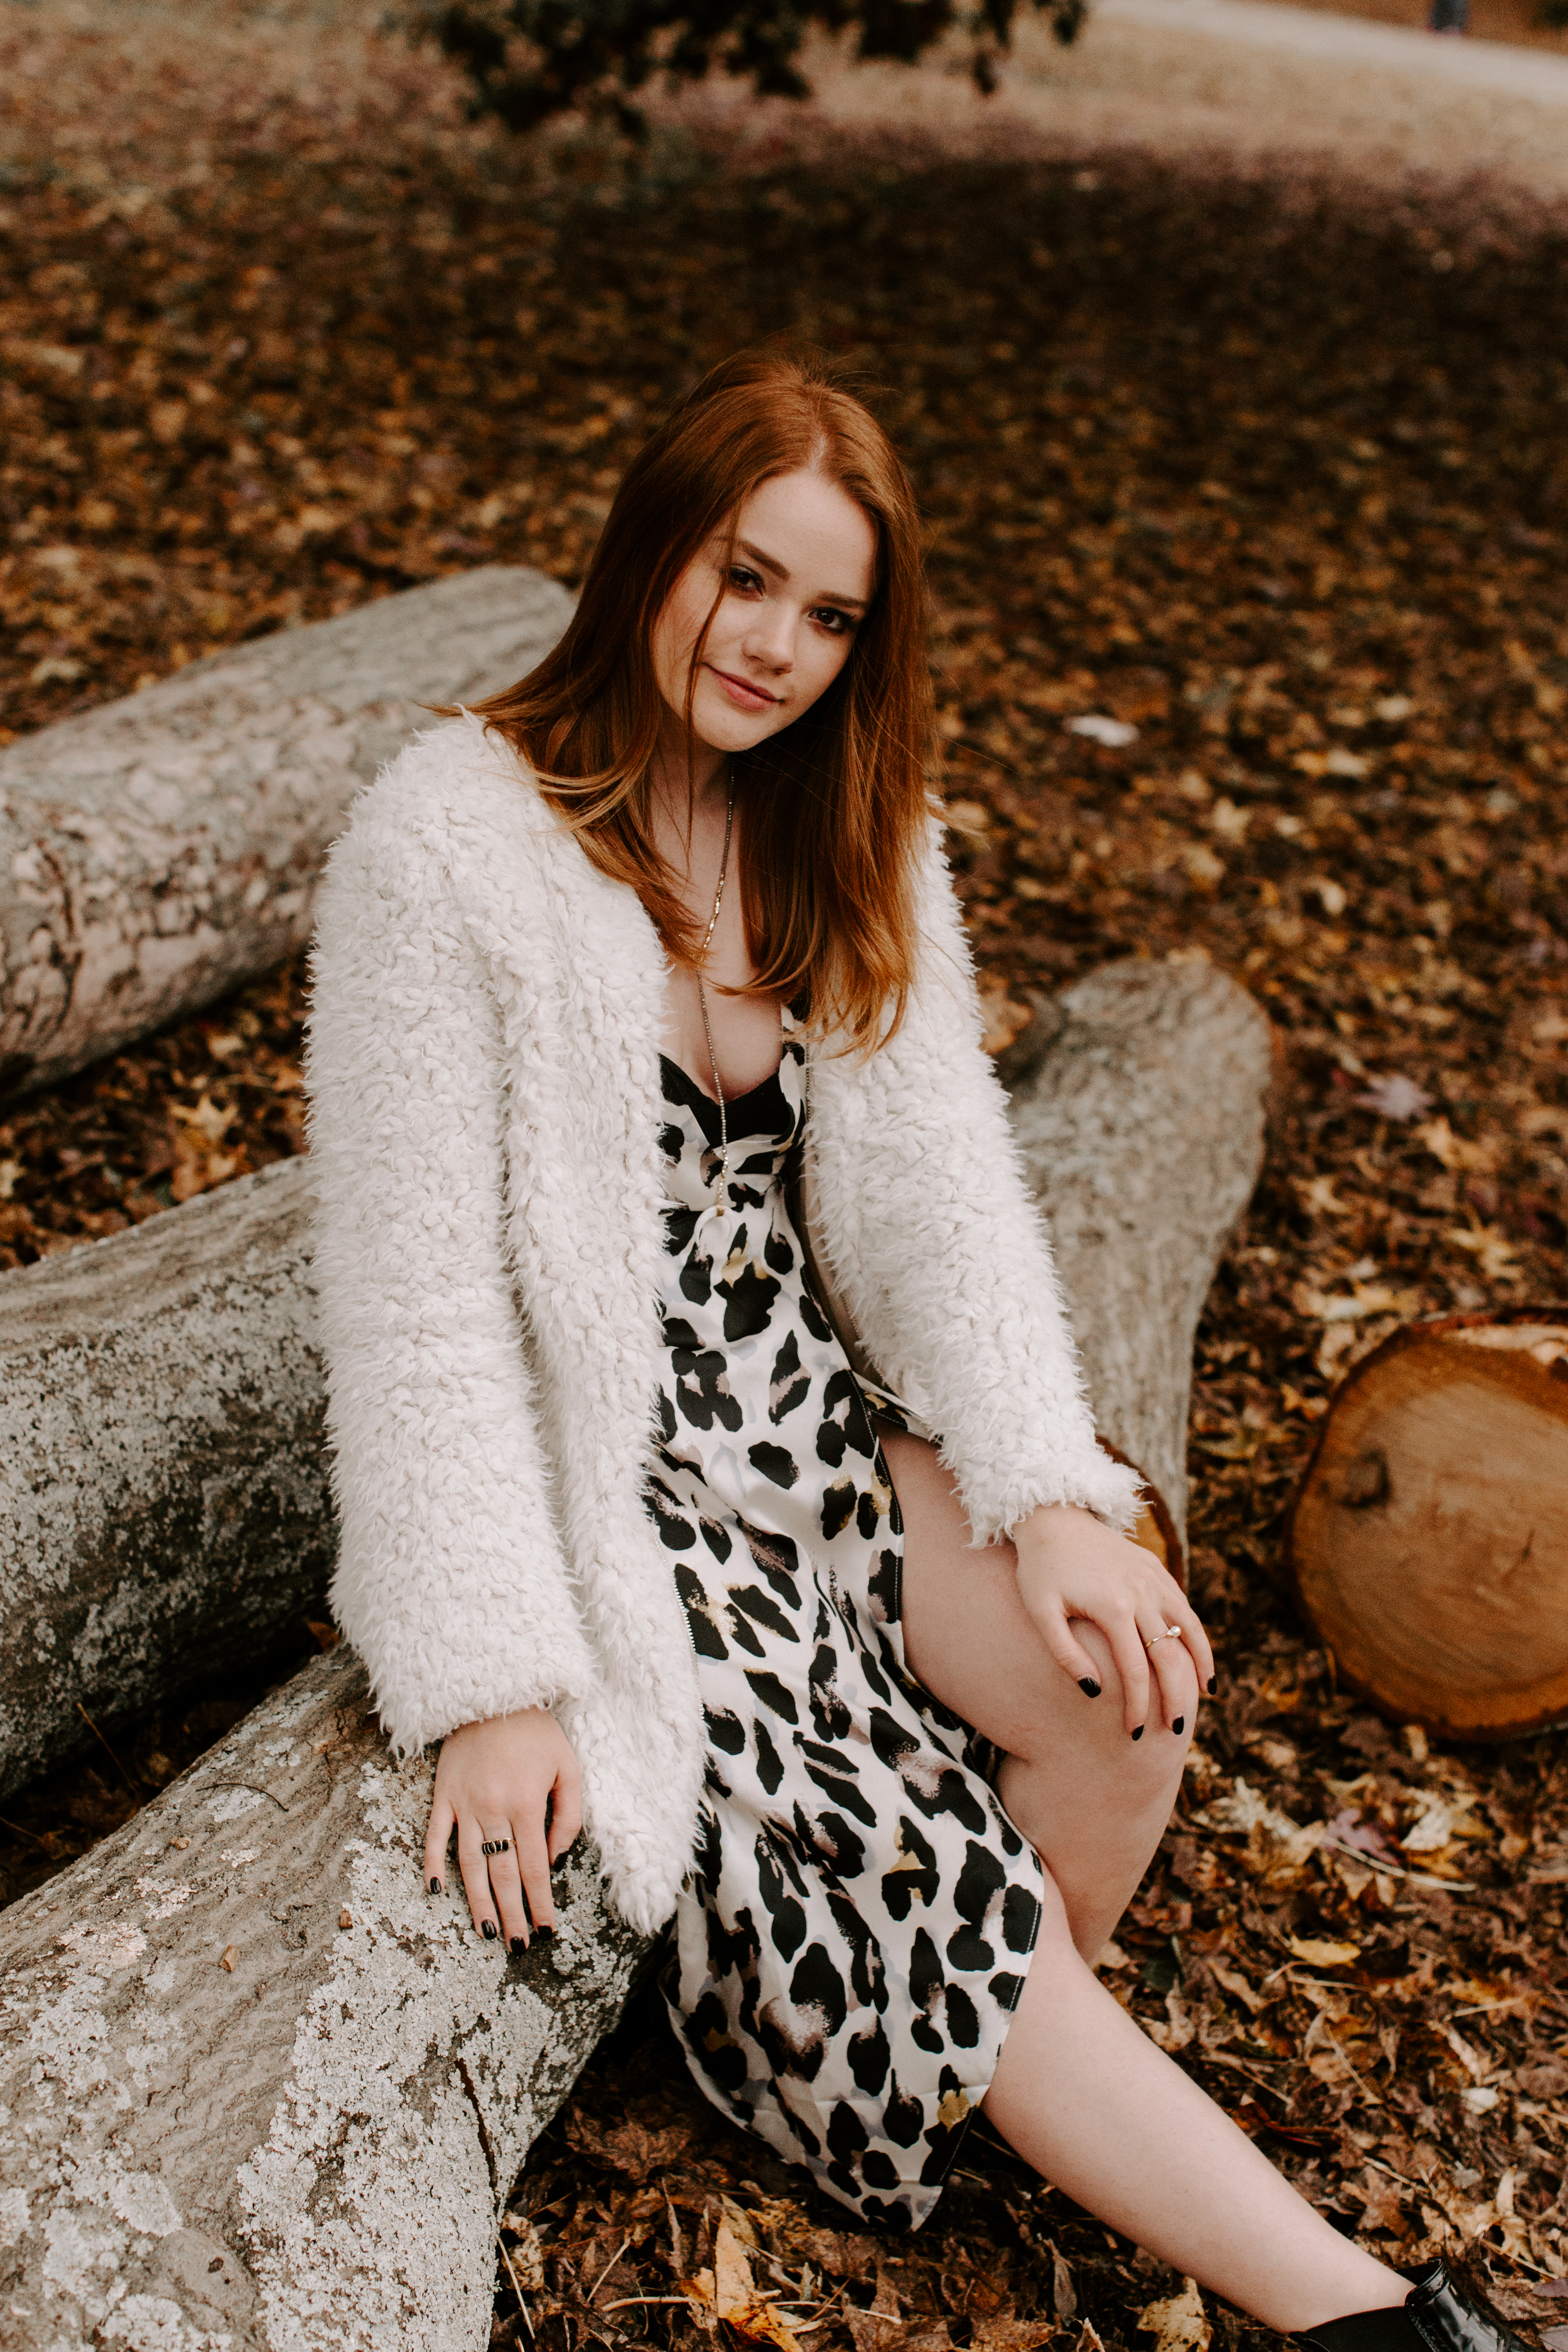 Larla H. Piedmont Park open field fall colors golden hour magazine lifestyle fashion candid pose red hair atlanta sitting on wood fuzzy sweater white dress wedding dress